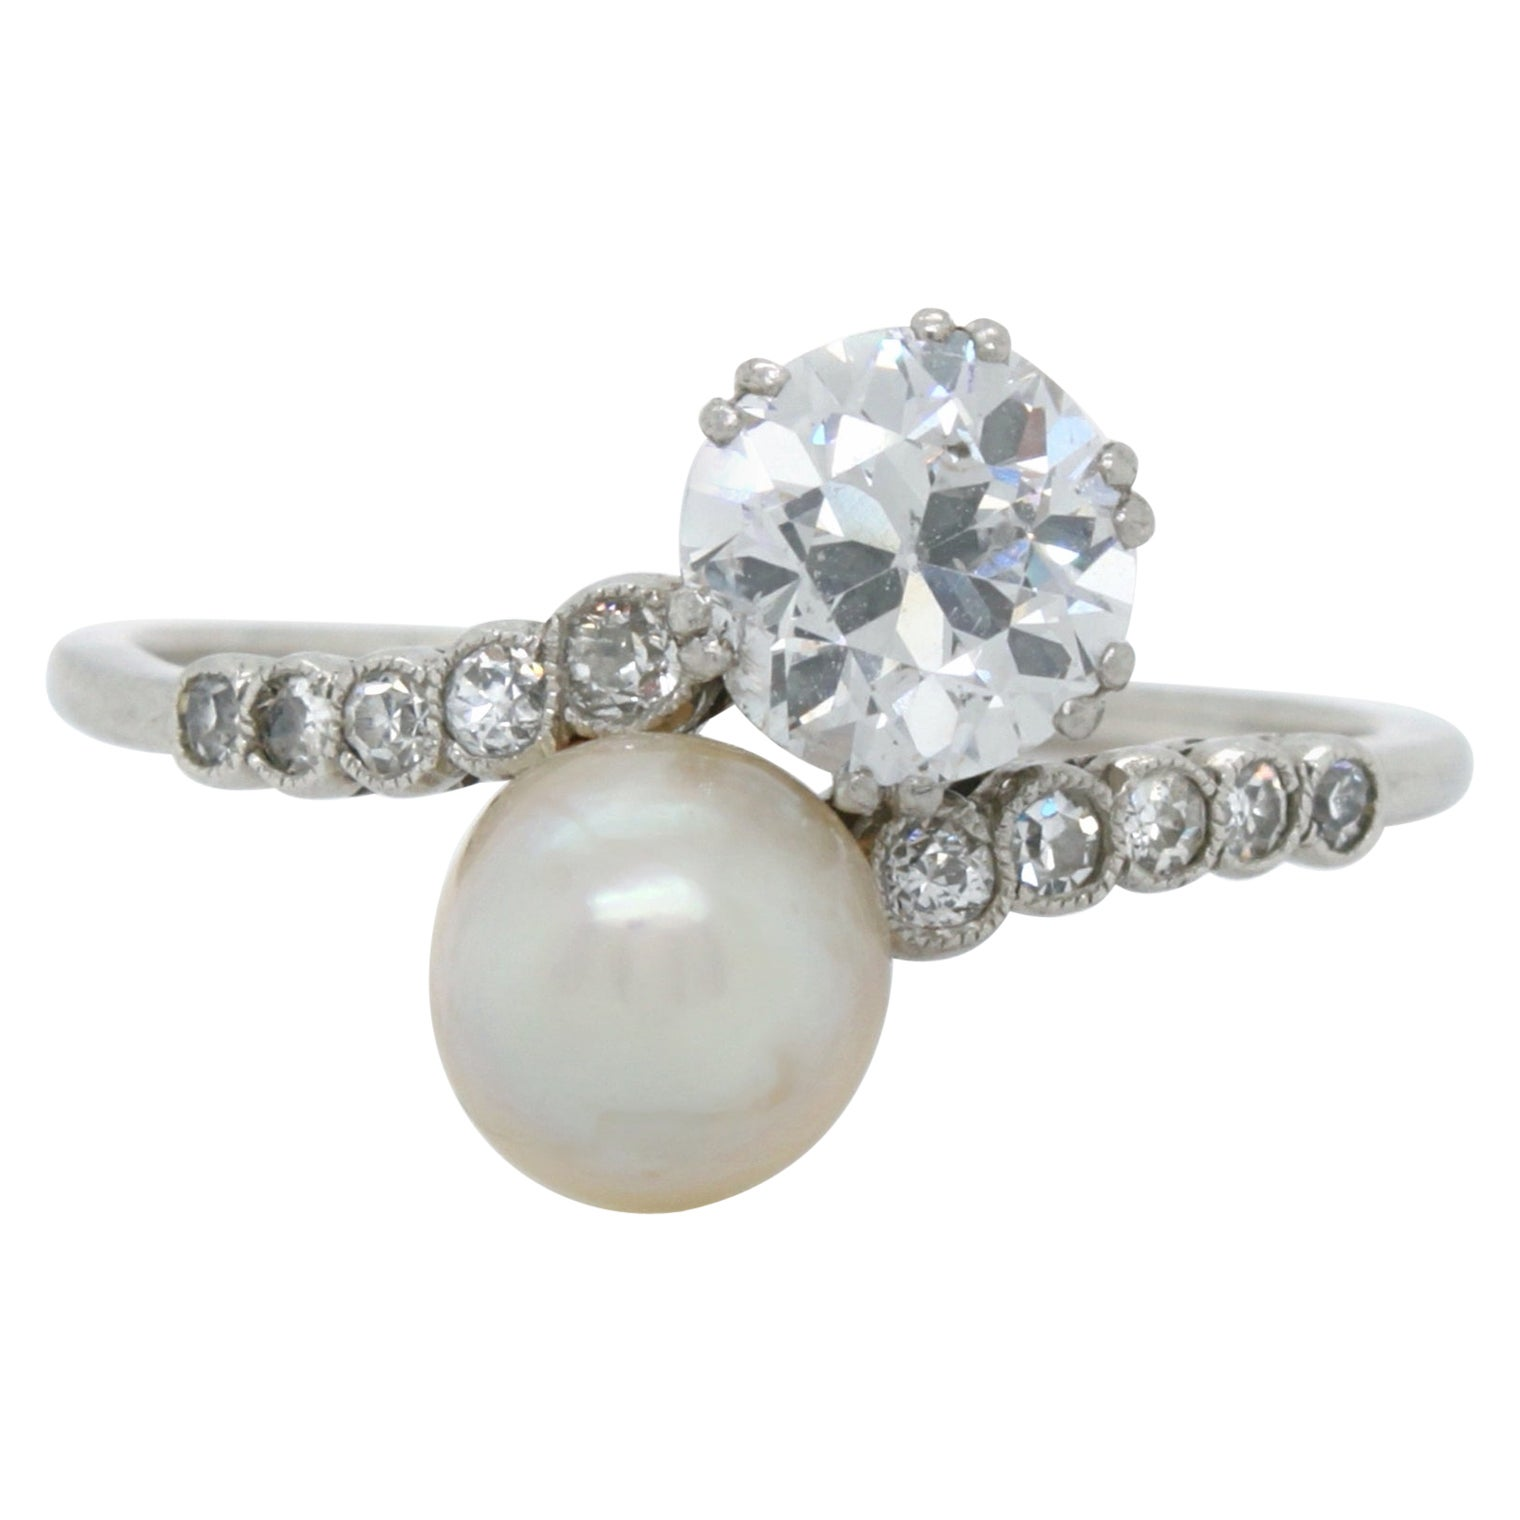 Edwardian Natural Pearl and Diamond Toi et Moi Ring, ca. 1900s